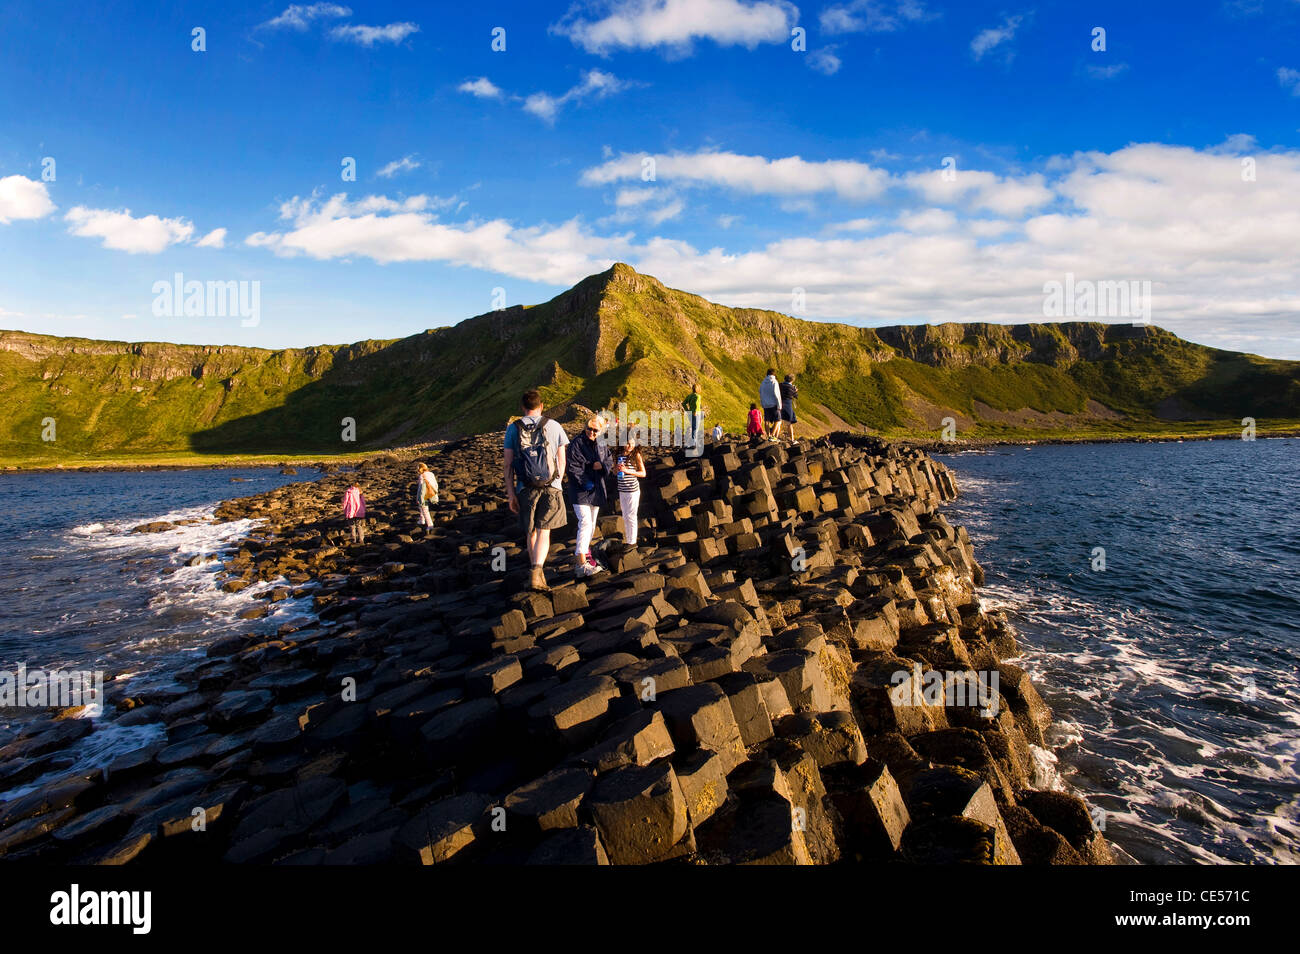 Giant's Causeway, Co. Antrim, Northern Ireland - Stock Image